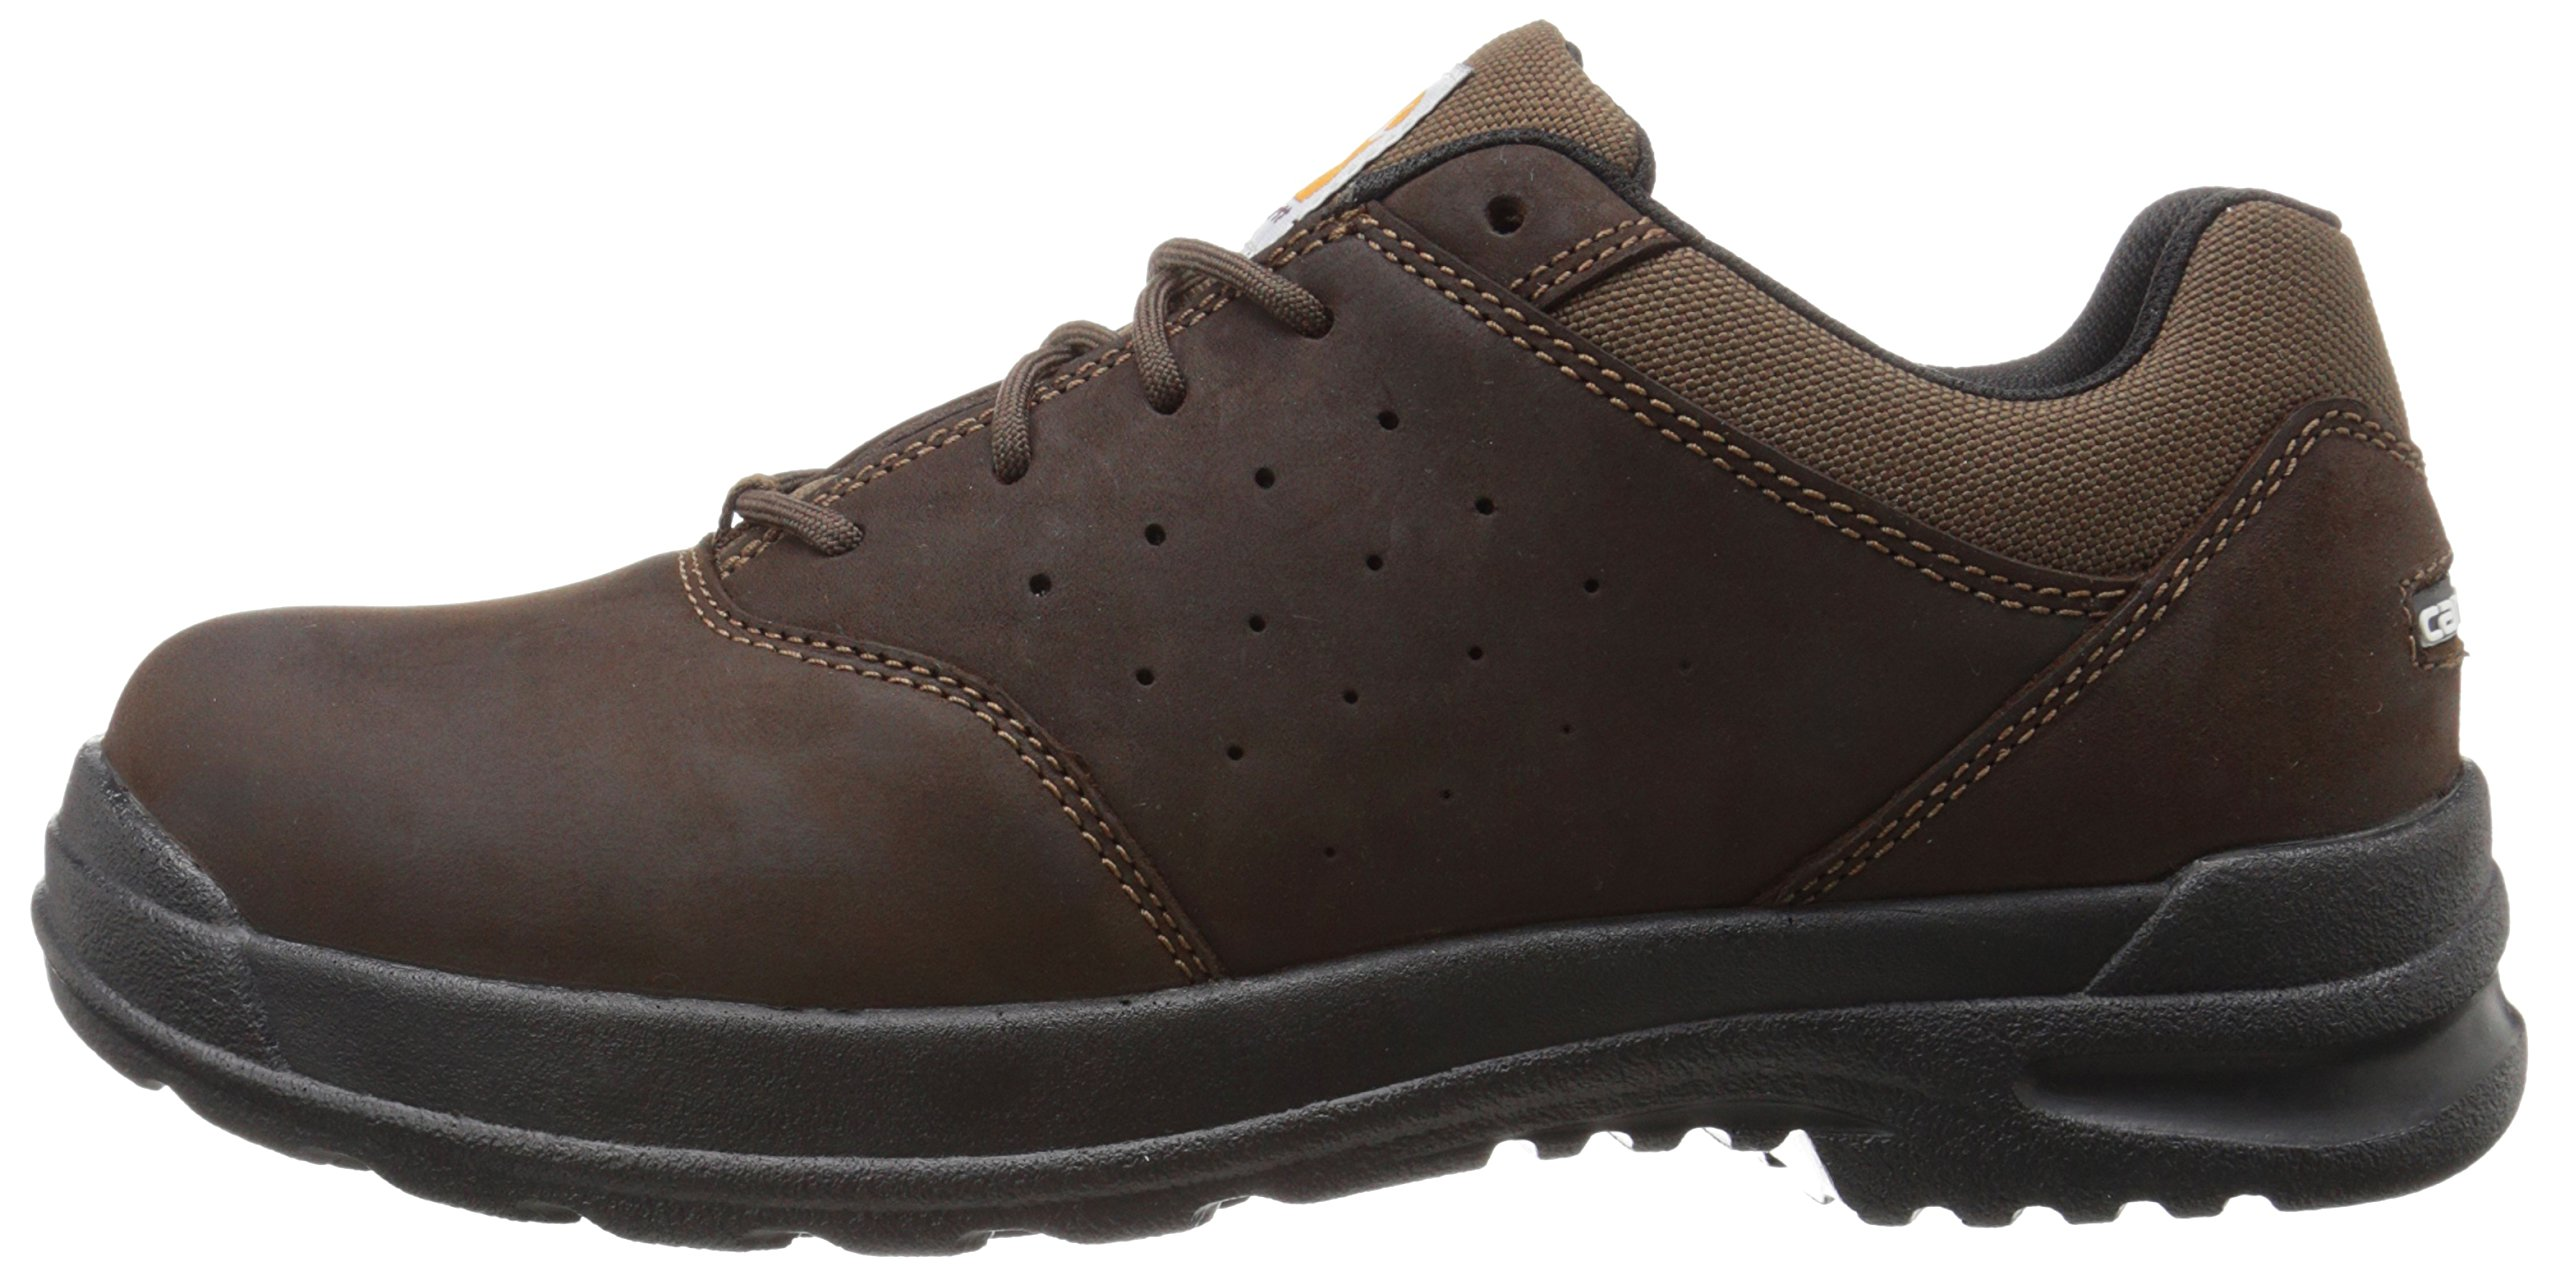 Carhartt Men's CMO3040 Walking Oxford,Dark Brown, 13 M US by Carhartt (Image #5)